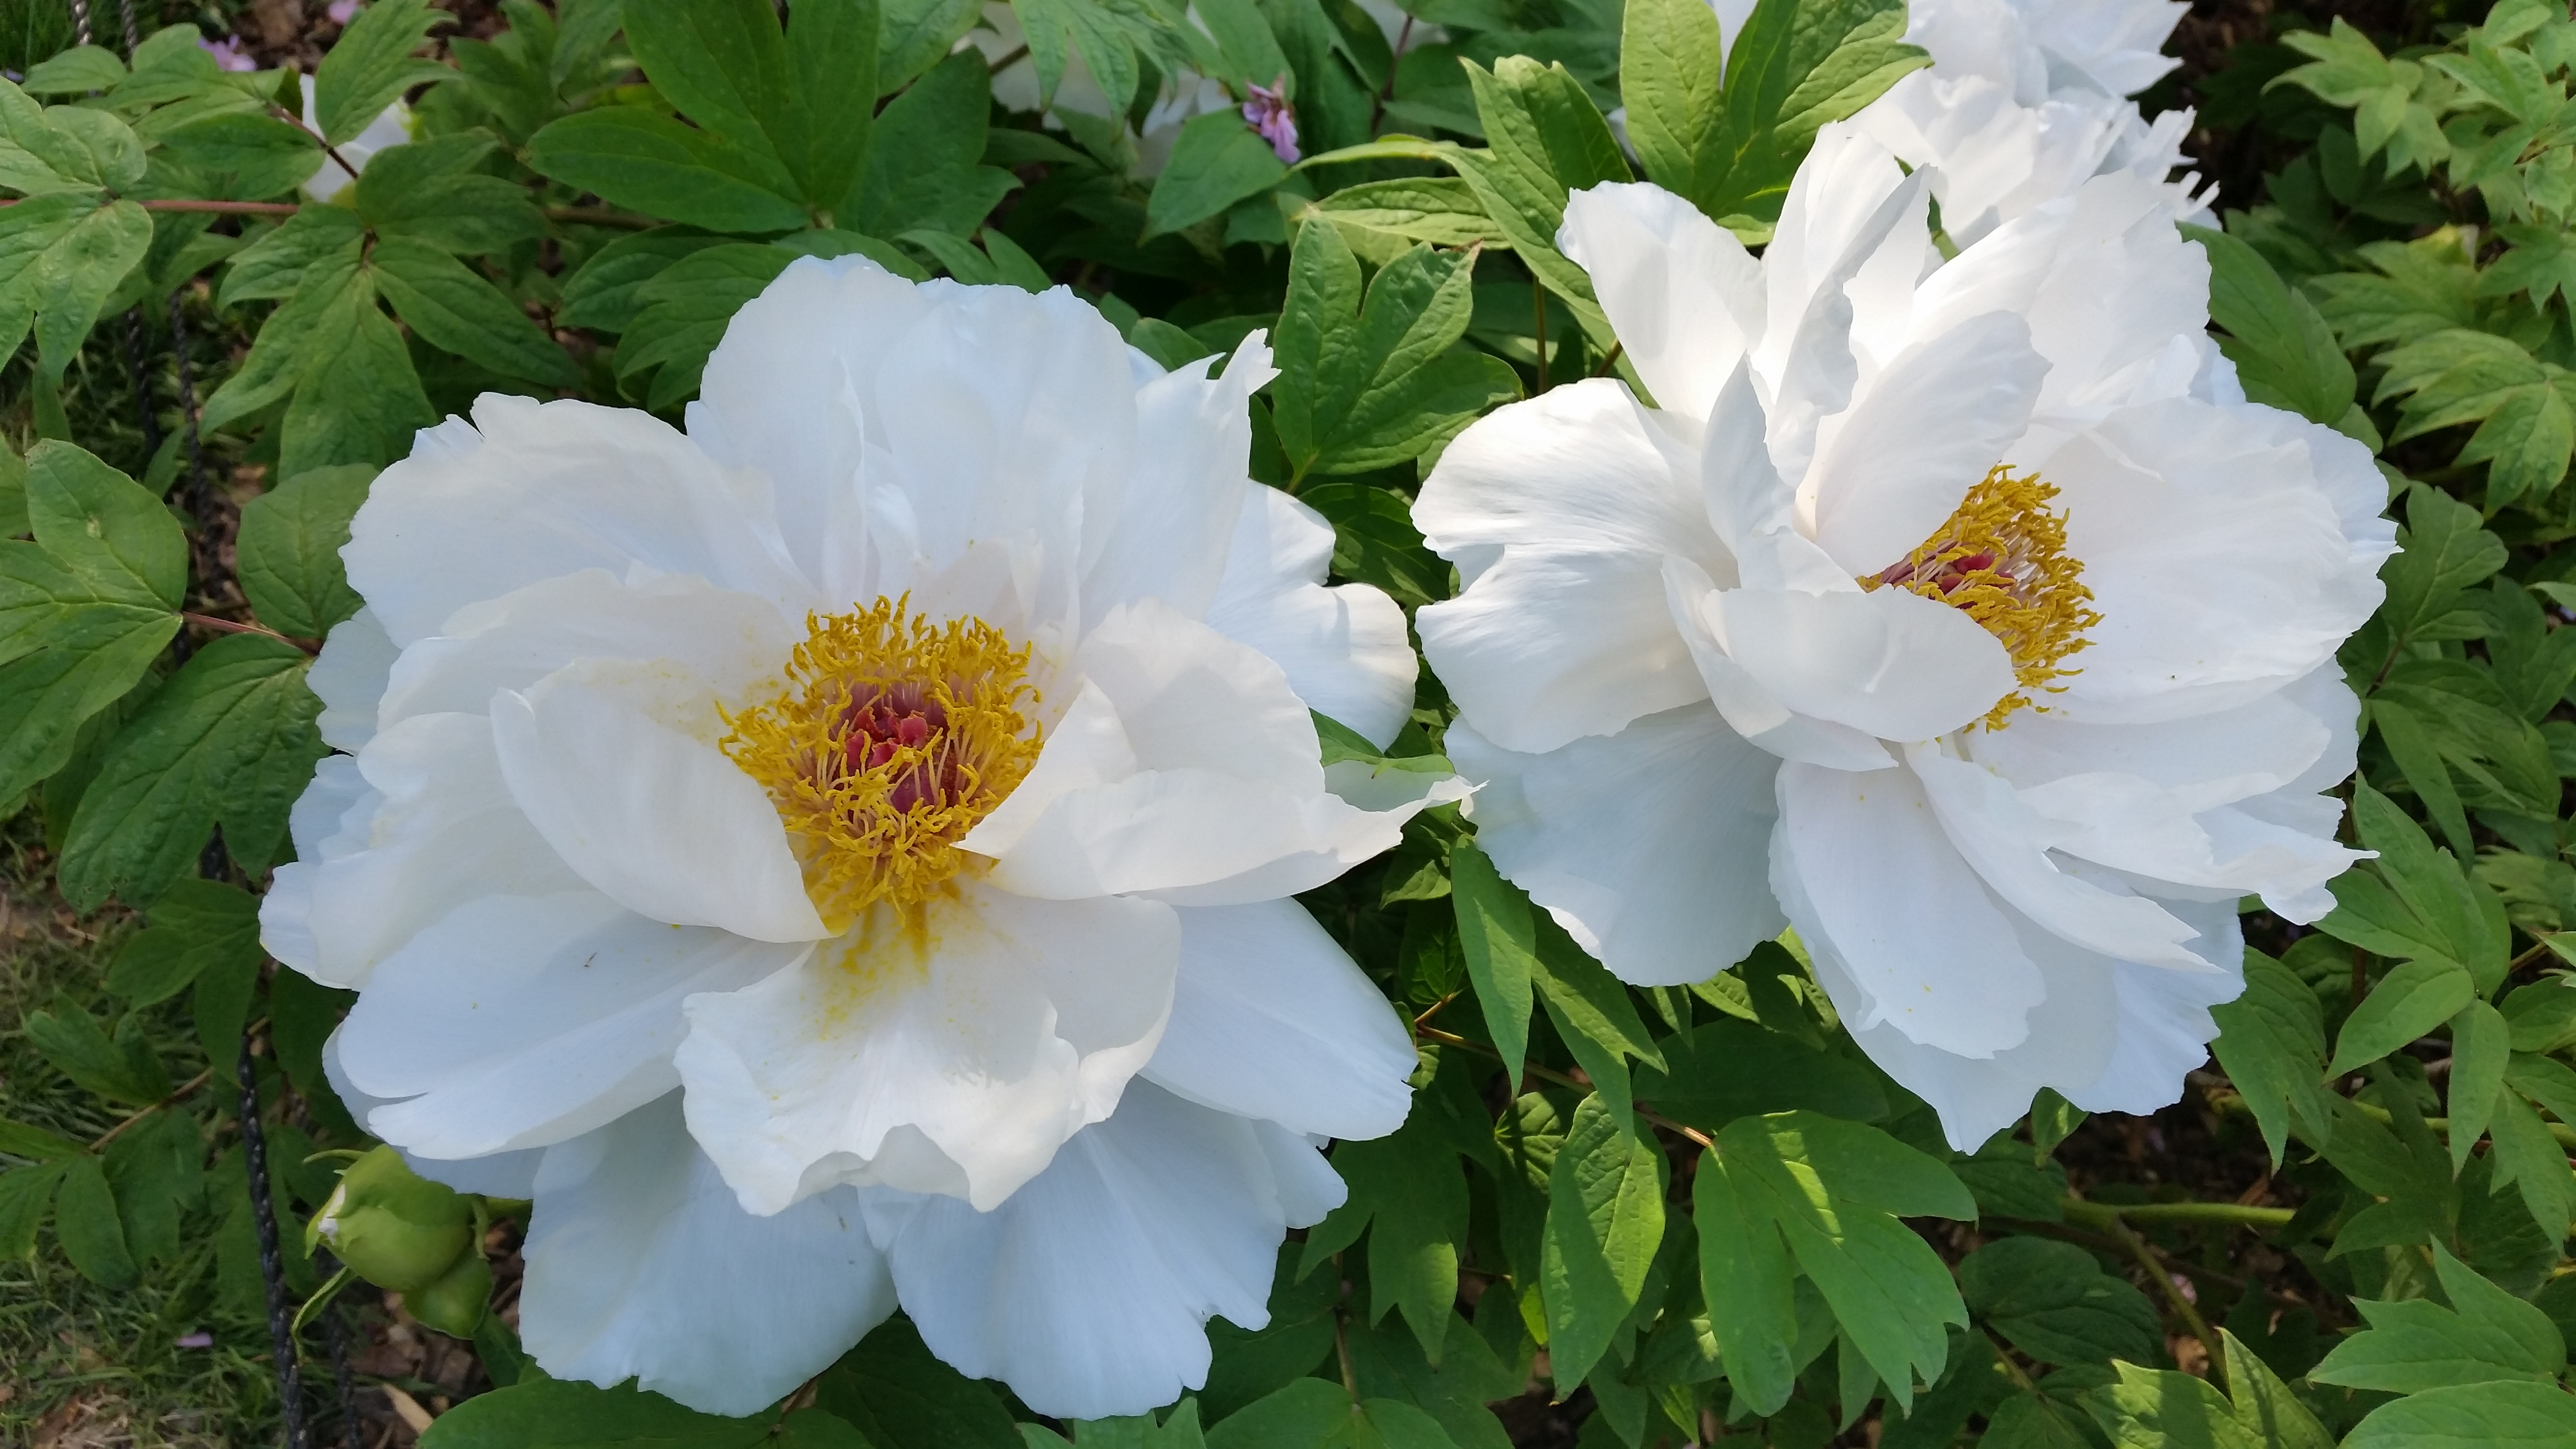 Neo neocon blog archive a little delayed today just about the most beautiful flowers in the world not the easiest plants to grow though unlike regular peonies which thrive in new england izmirmasajfo Images